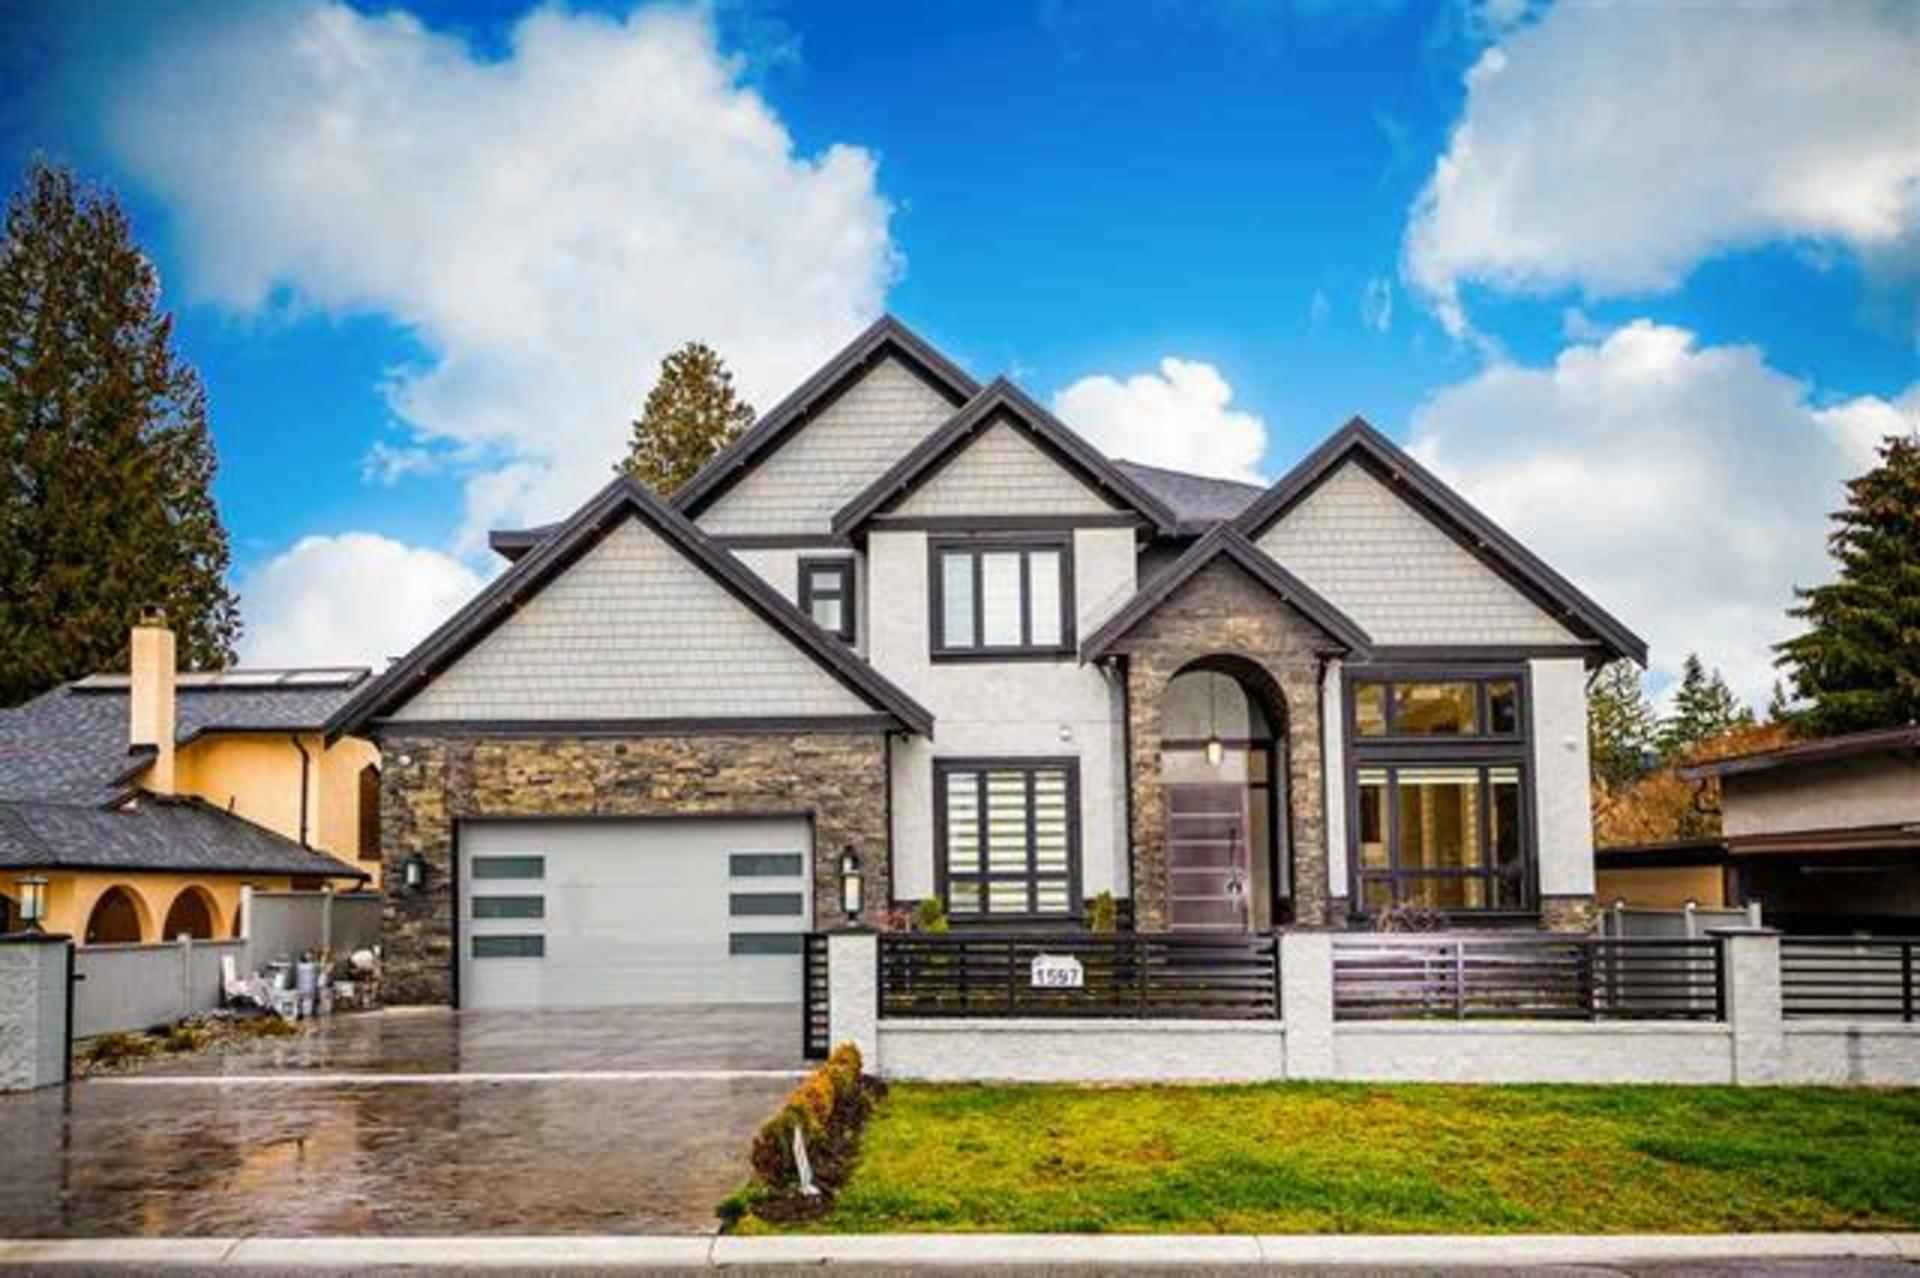 1597 Balmoral, Harbour Place, Coquitlam